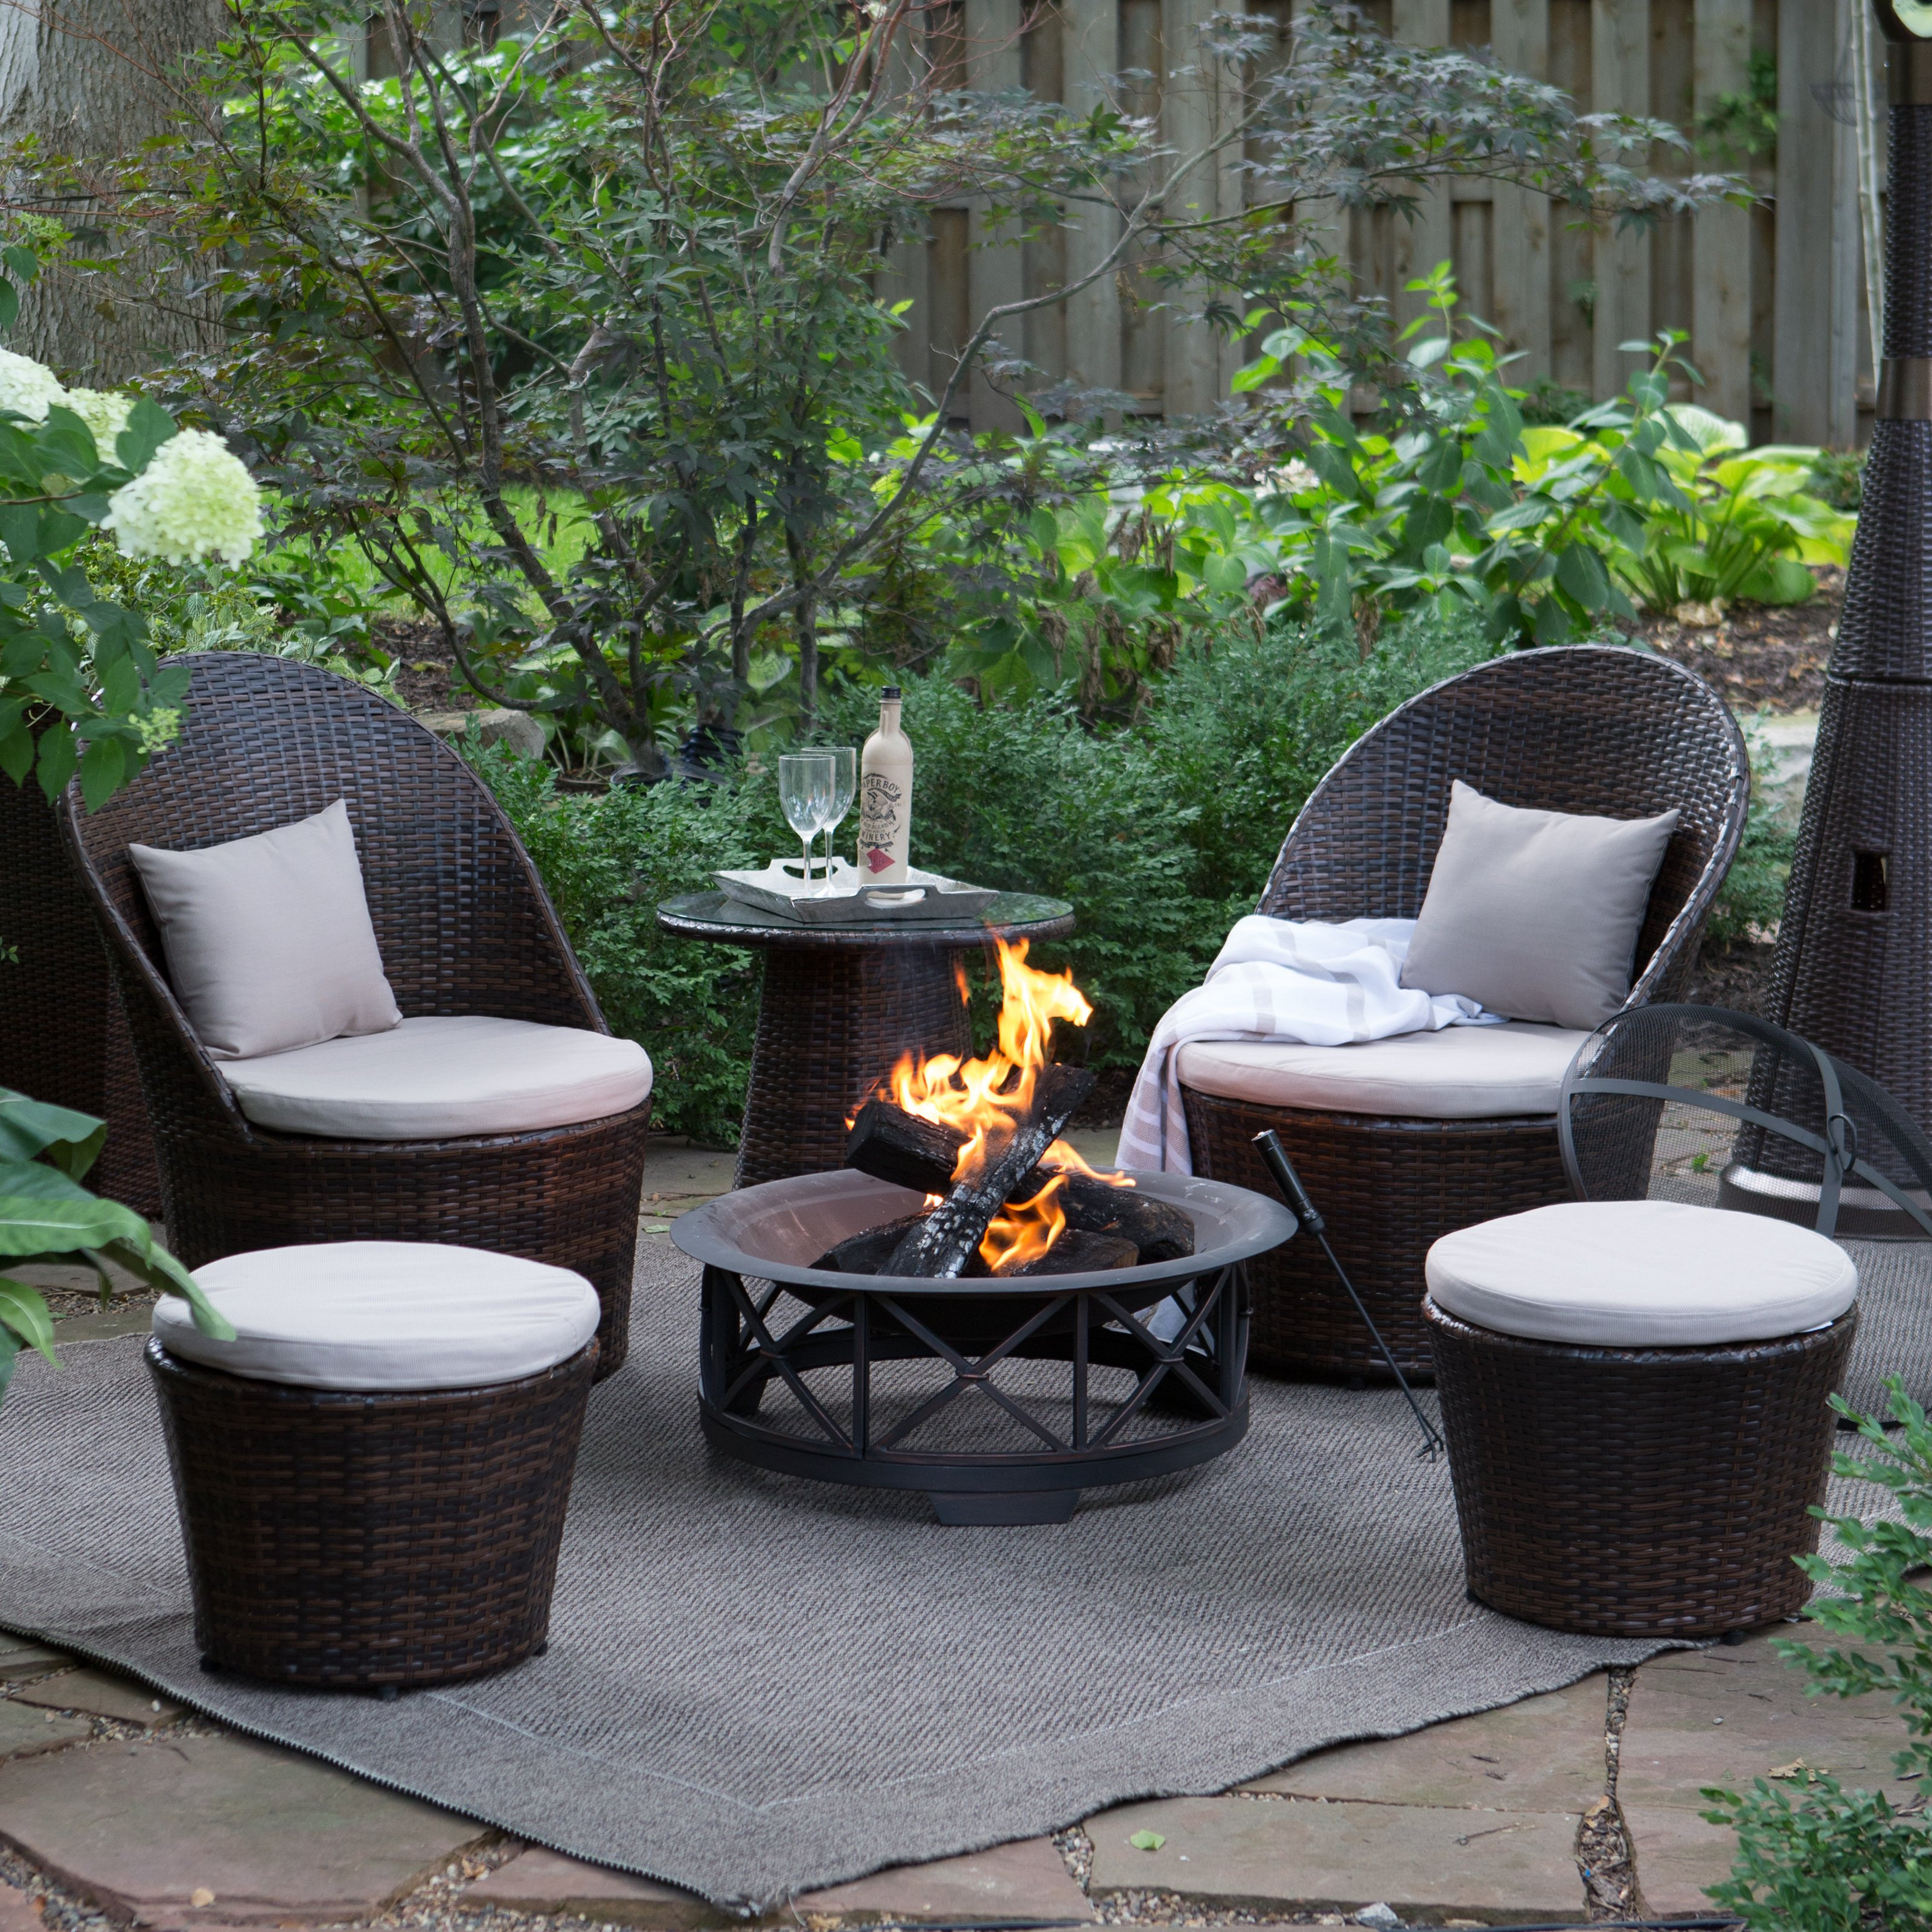 Best ideas about Outdoor Fire Pit Sets . Save or Pin Coral Coast Layton Wicker Outdoor Fire Pit Chat Set at Now.